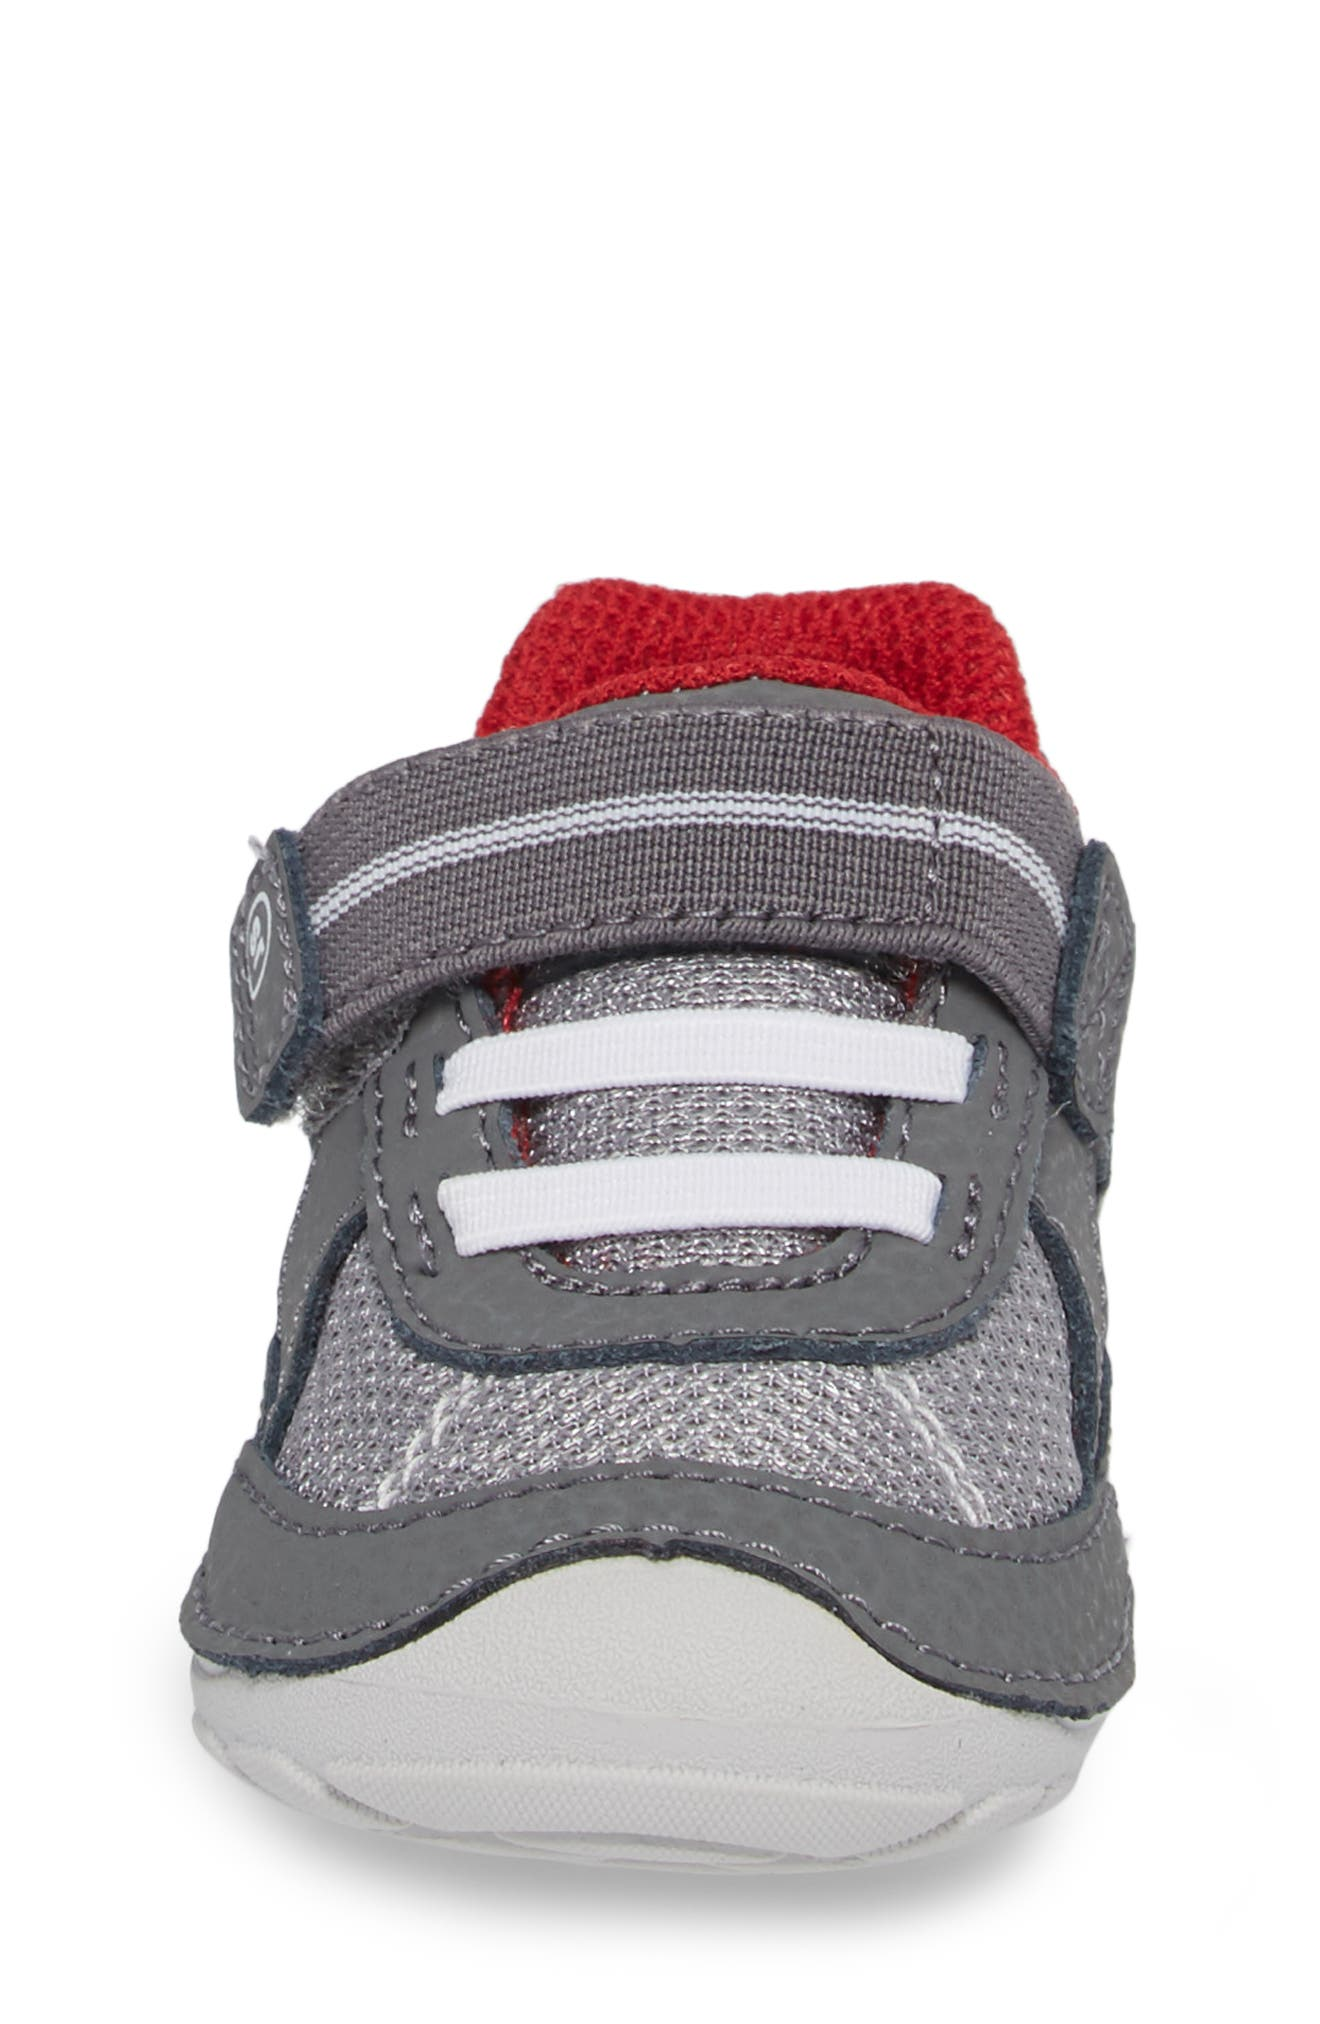 Alternate Image 4  - Stride Rite Soft Motion™ Jamie Sneaker (Baby & Walker)